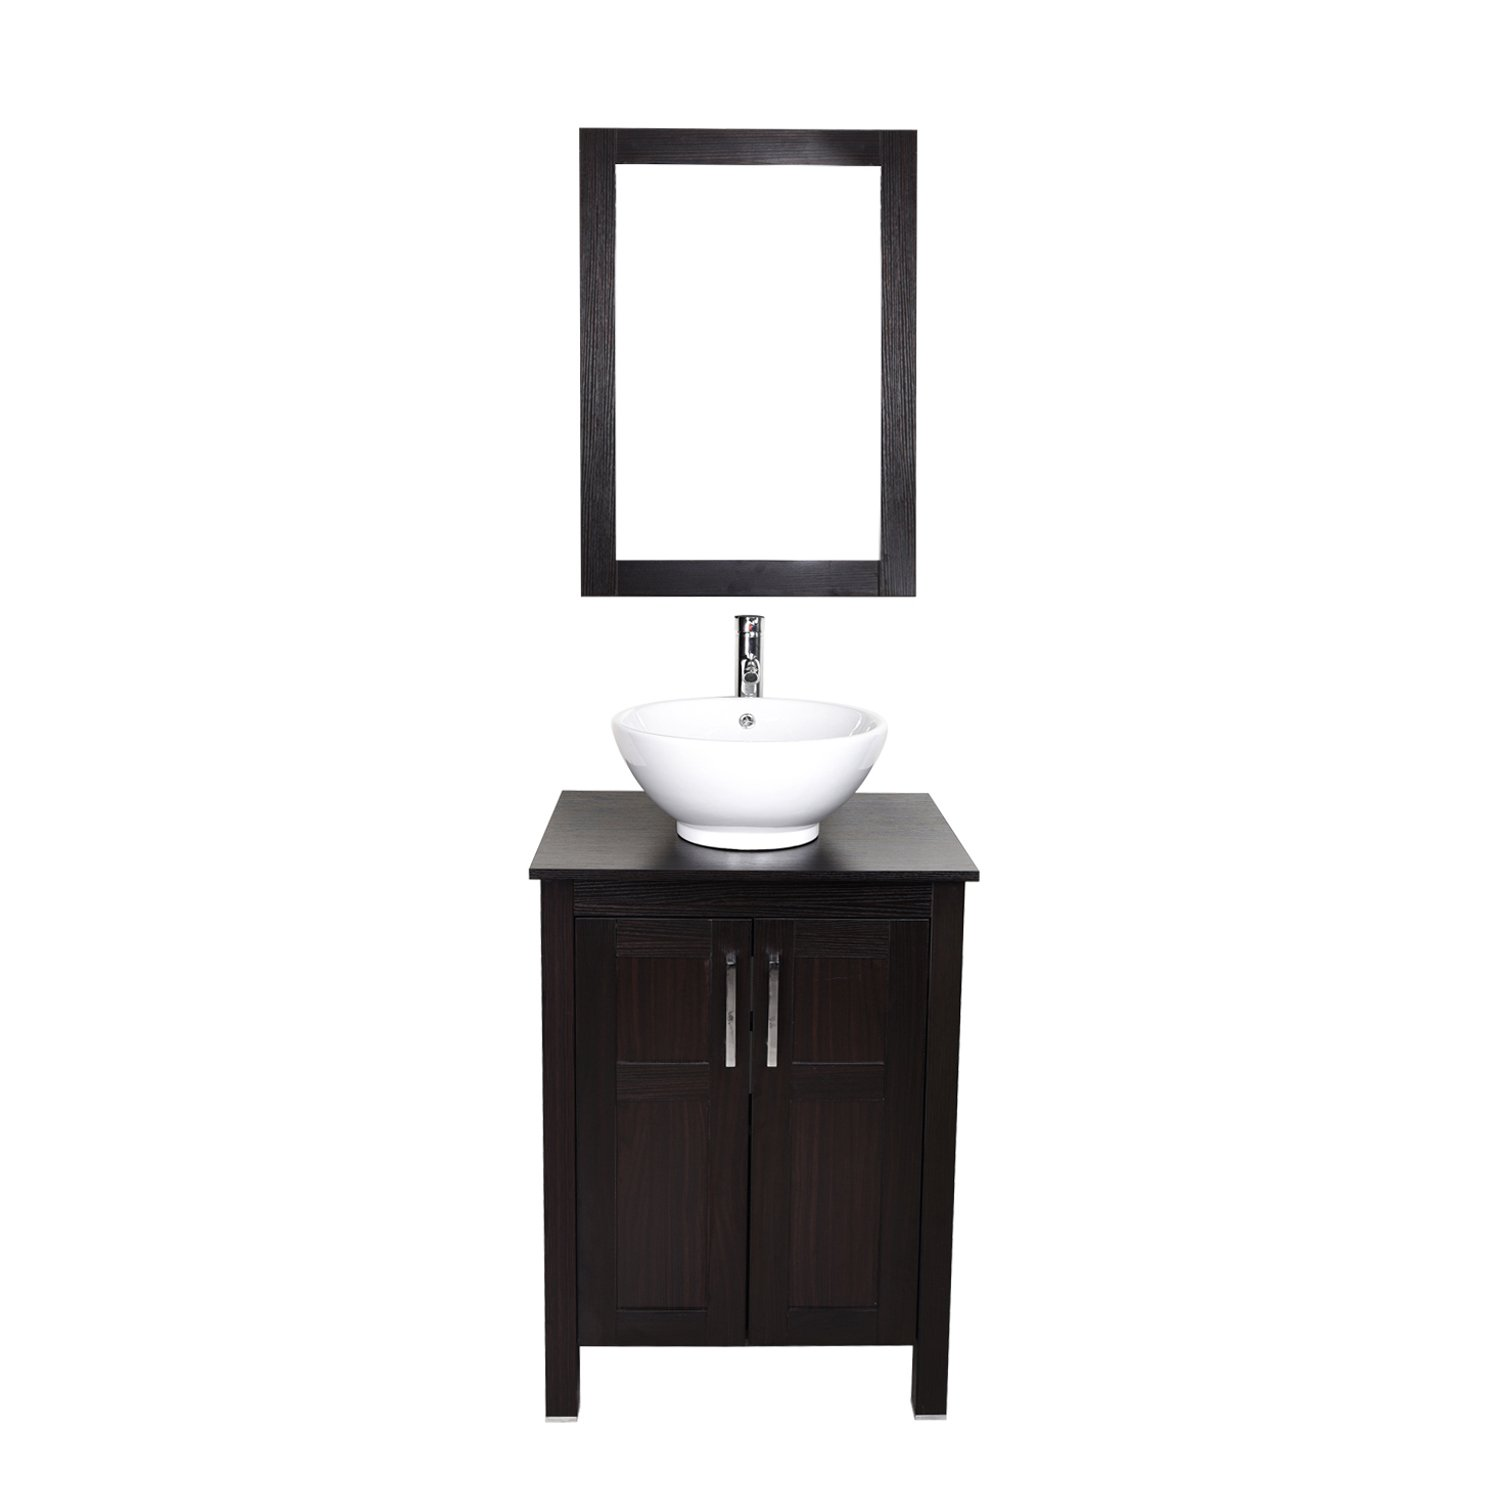 ELECWISH 24 Inch Bathroom Vanity And Sink bo Stand Cabinet and